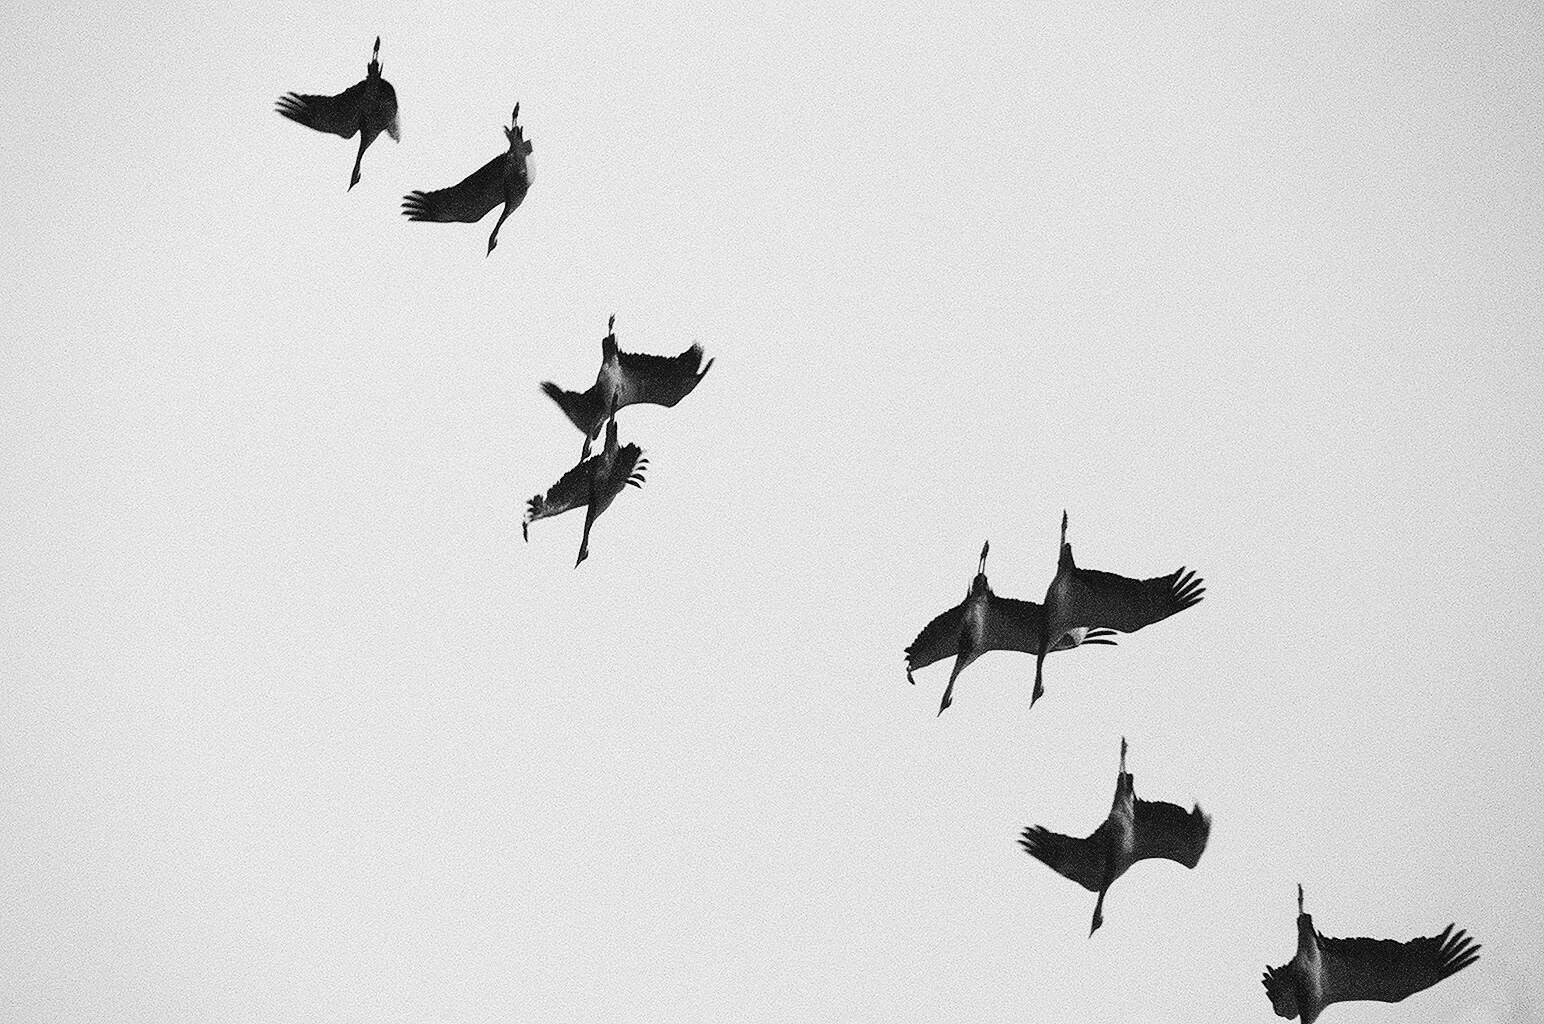 Saibarian_birds_FLYIN_FLOW_B&W.JPG